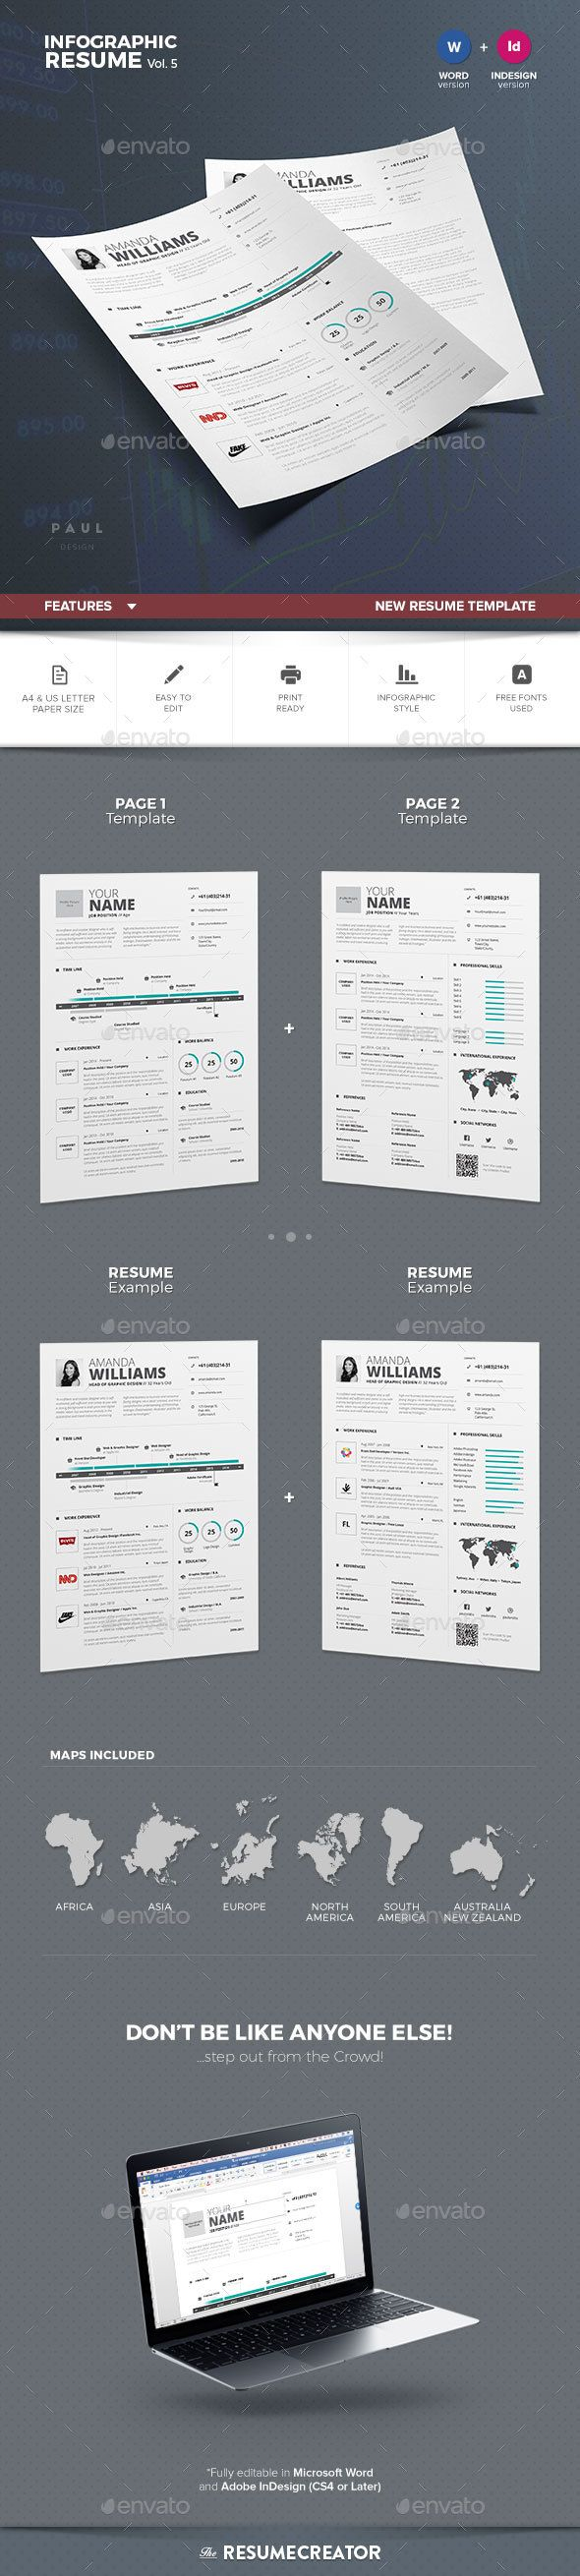 Functional Resume Template Microsoft%0A Infographic Resume   Cv Template MS Word  InDesign INDD